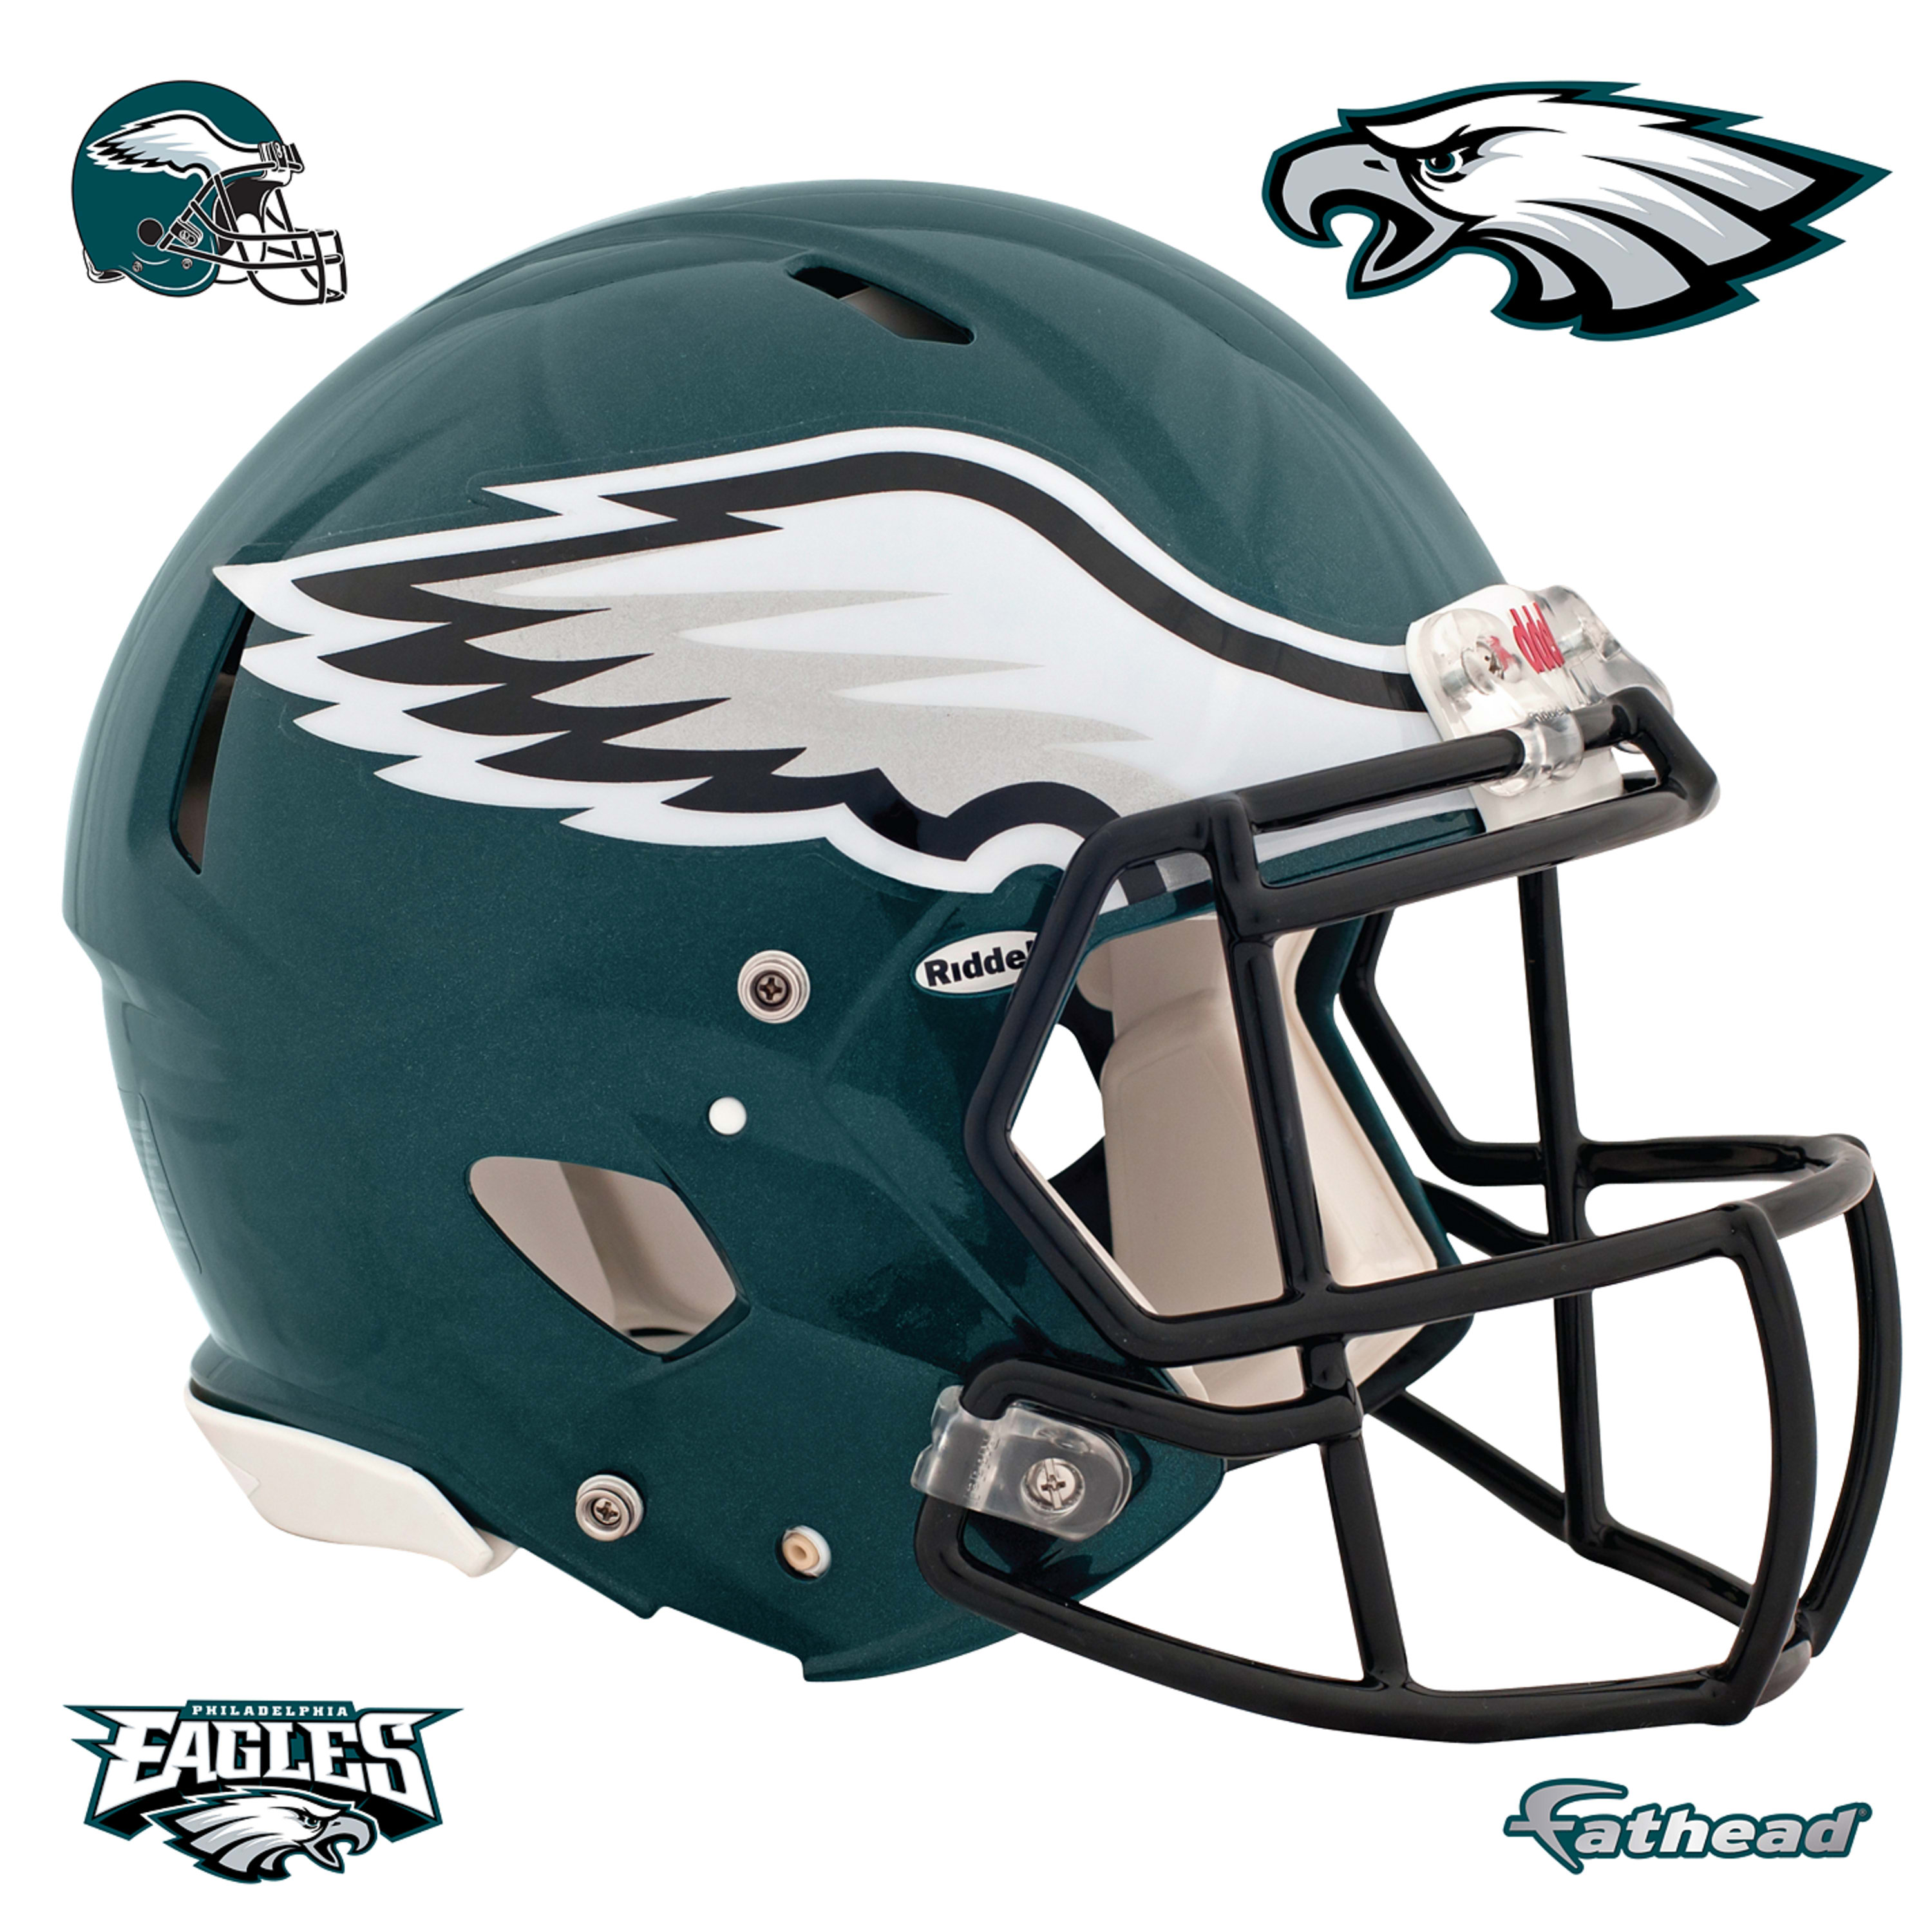 Philadelphia Eagles: Helmet.